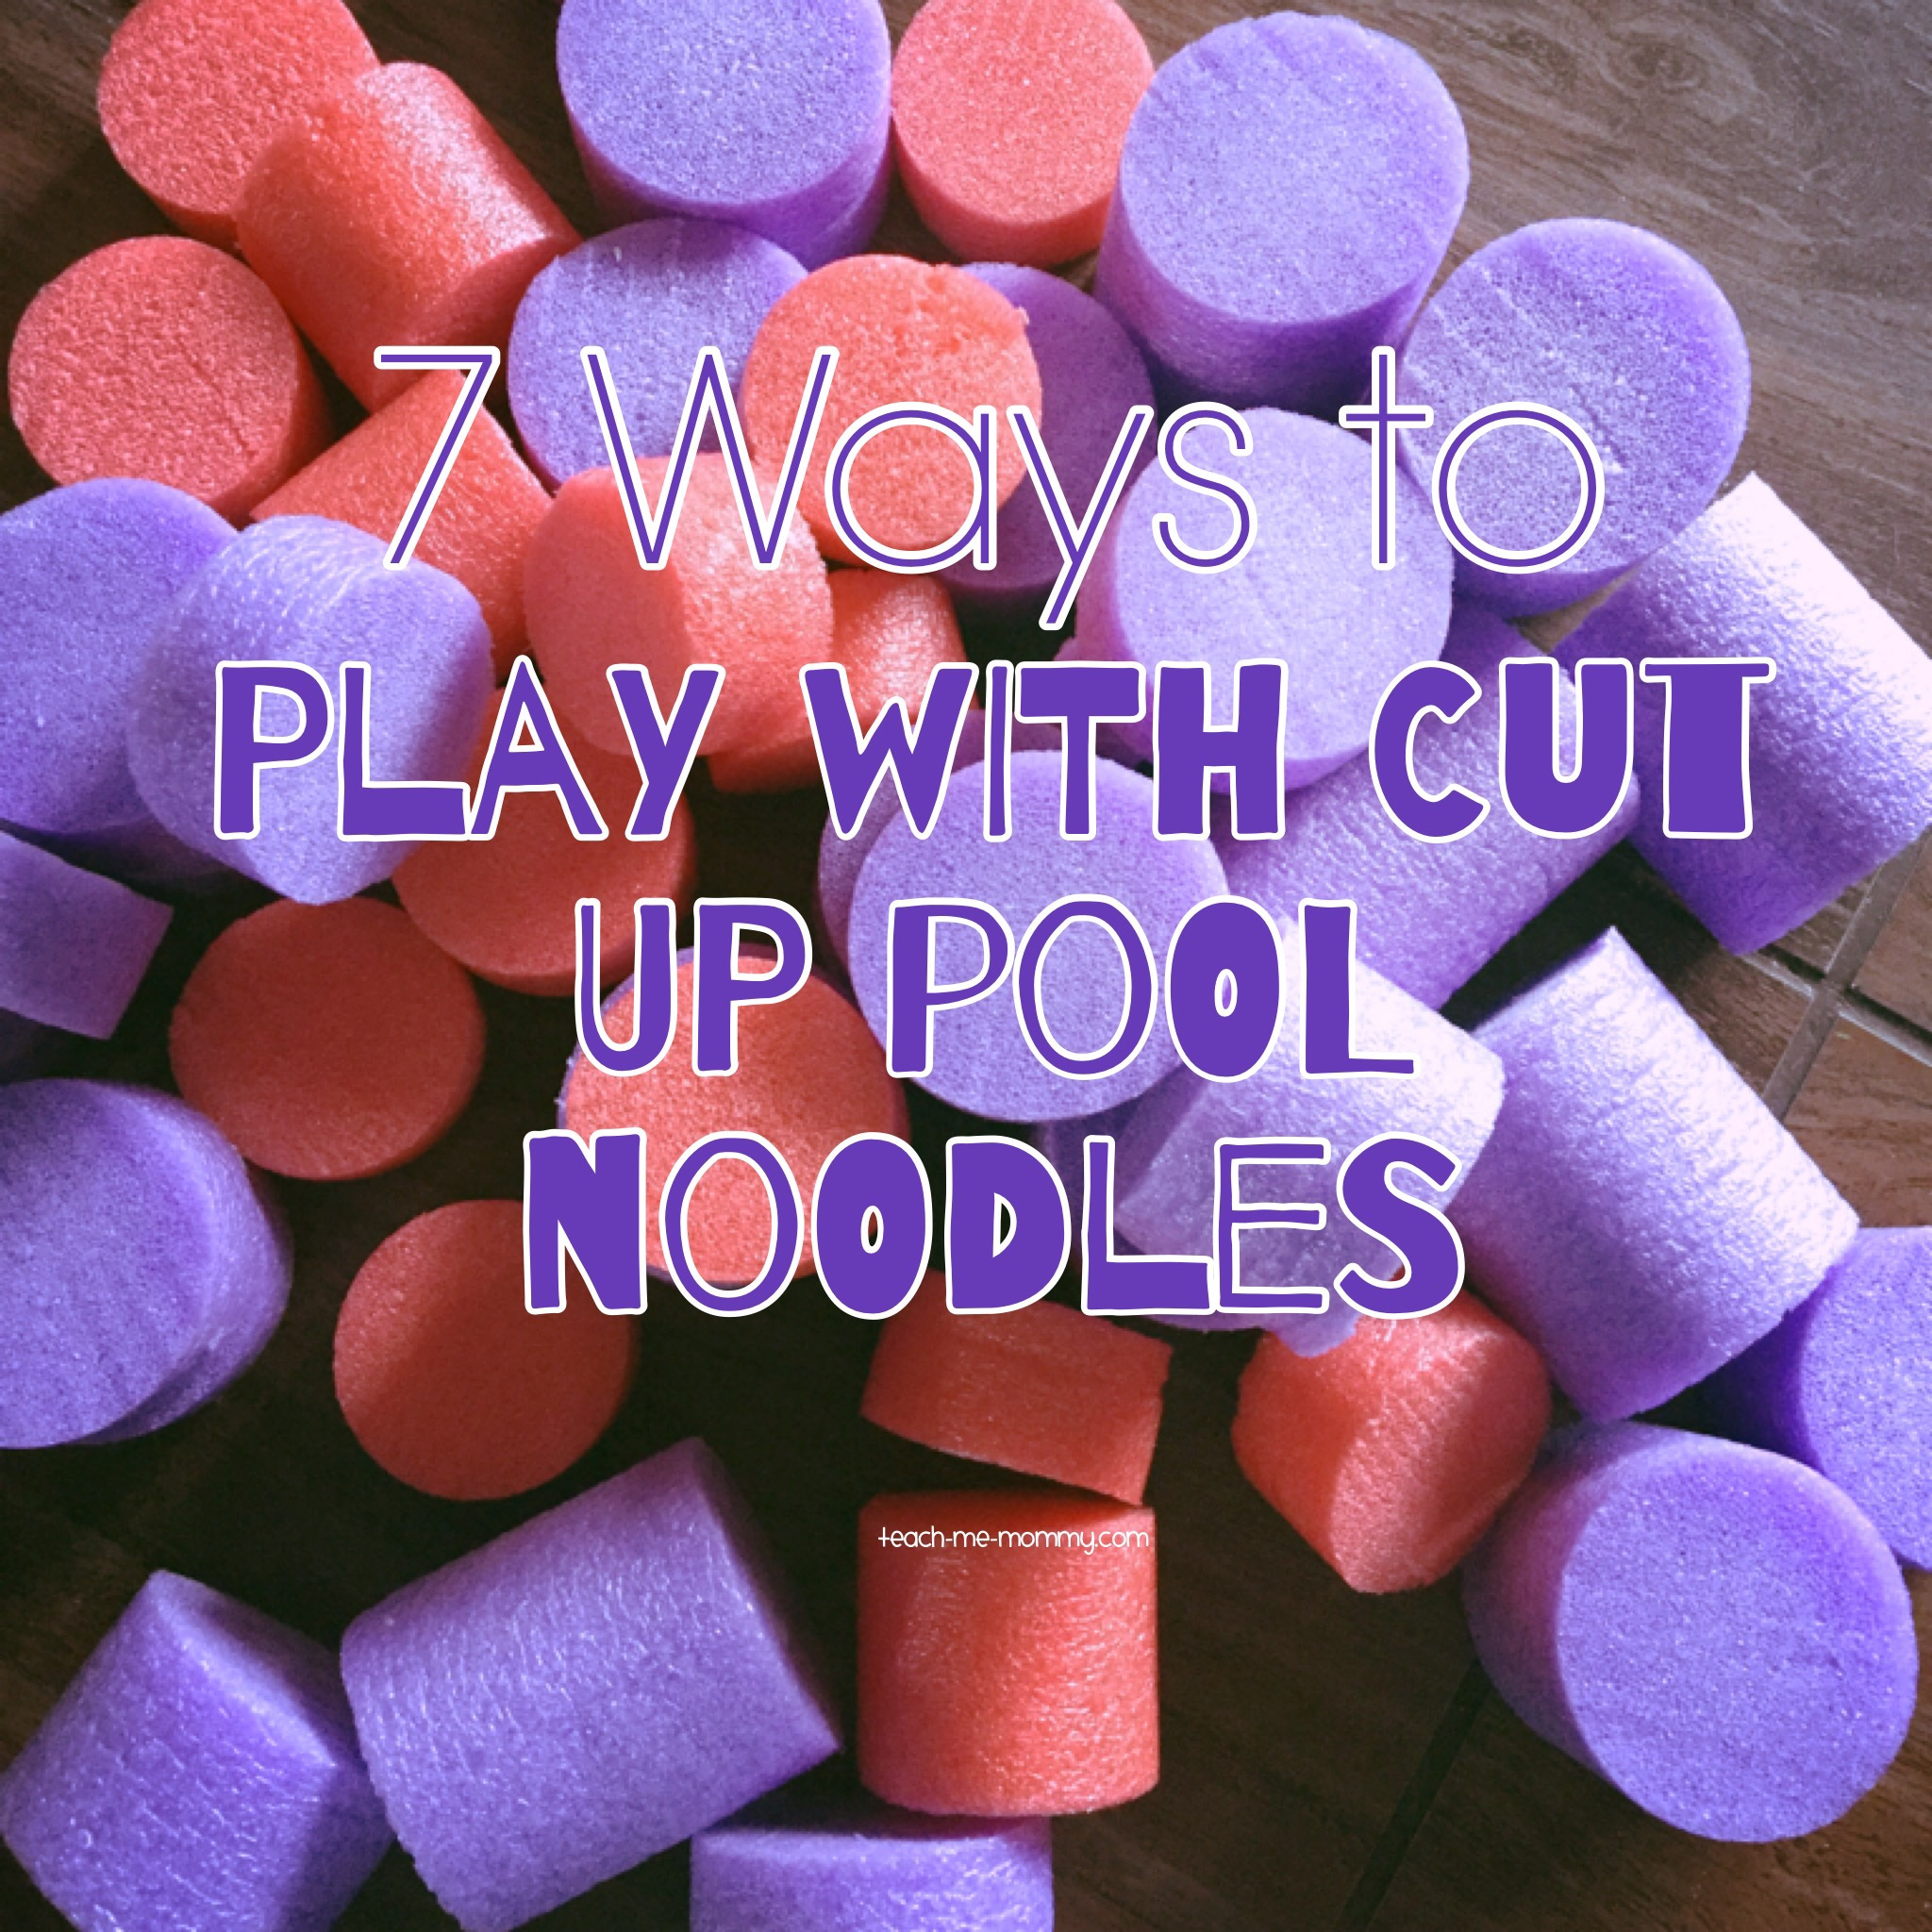 Play with pool noodles